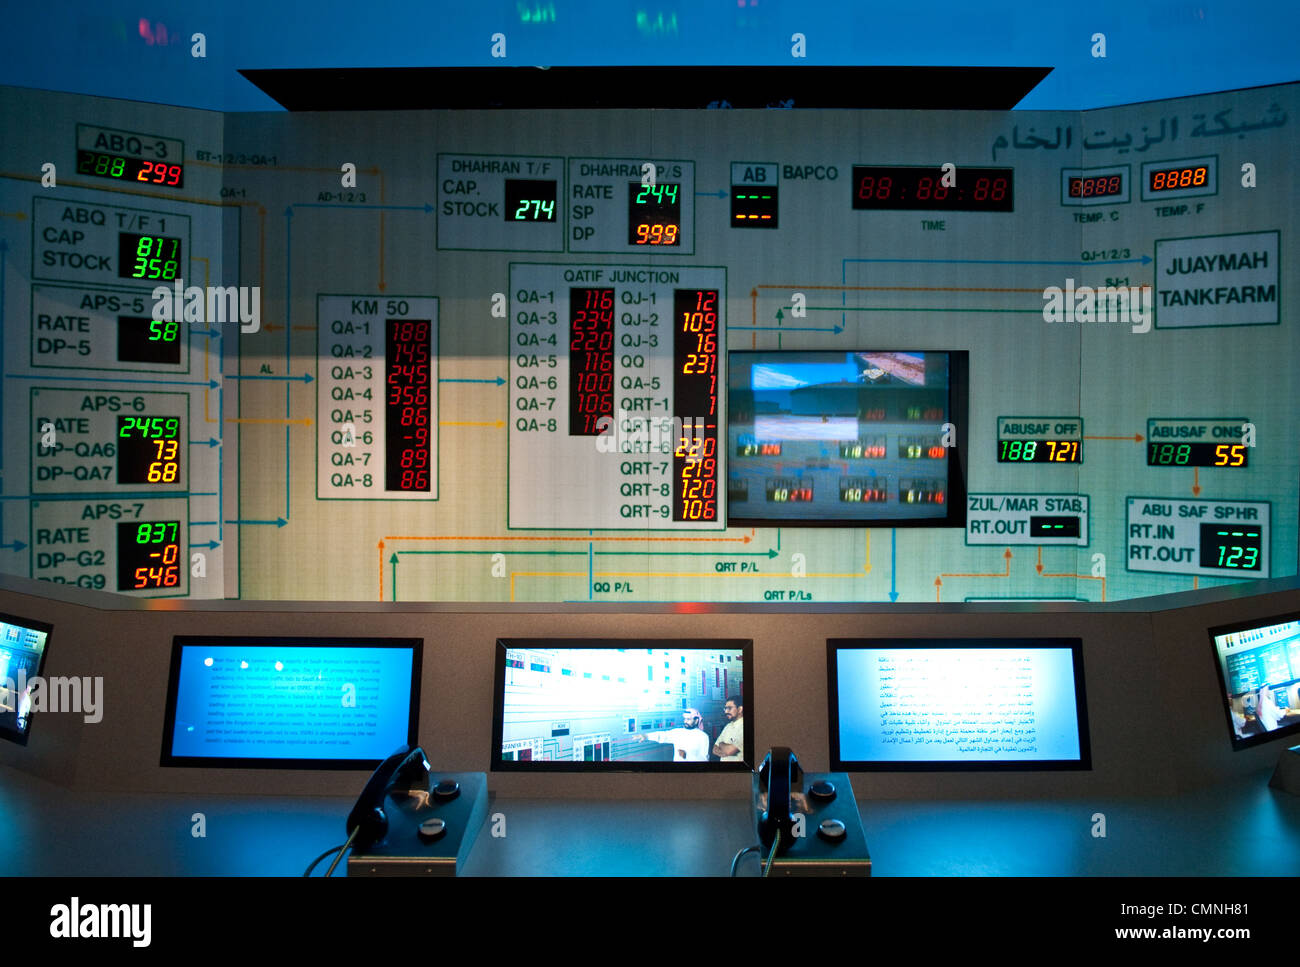 Asia Saudi Arabia Dammam, the reception center for the oil industry Aramco, monitors - Stock Image